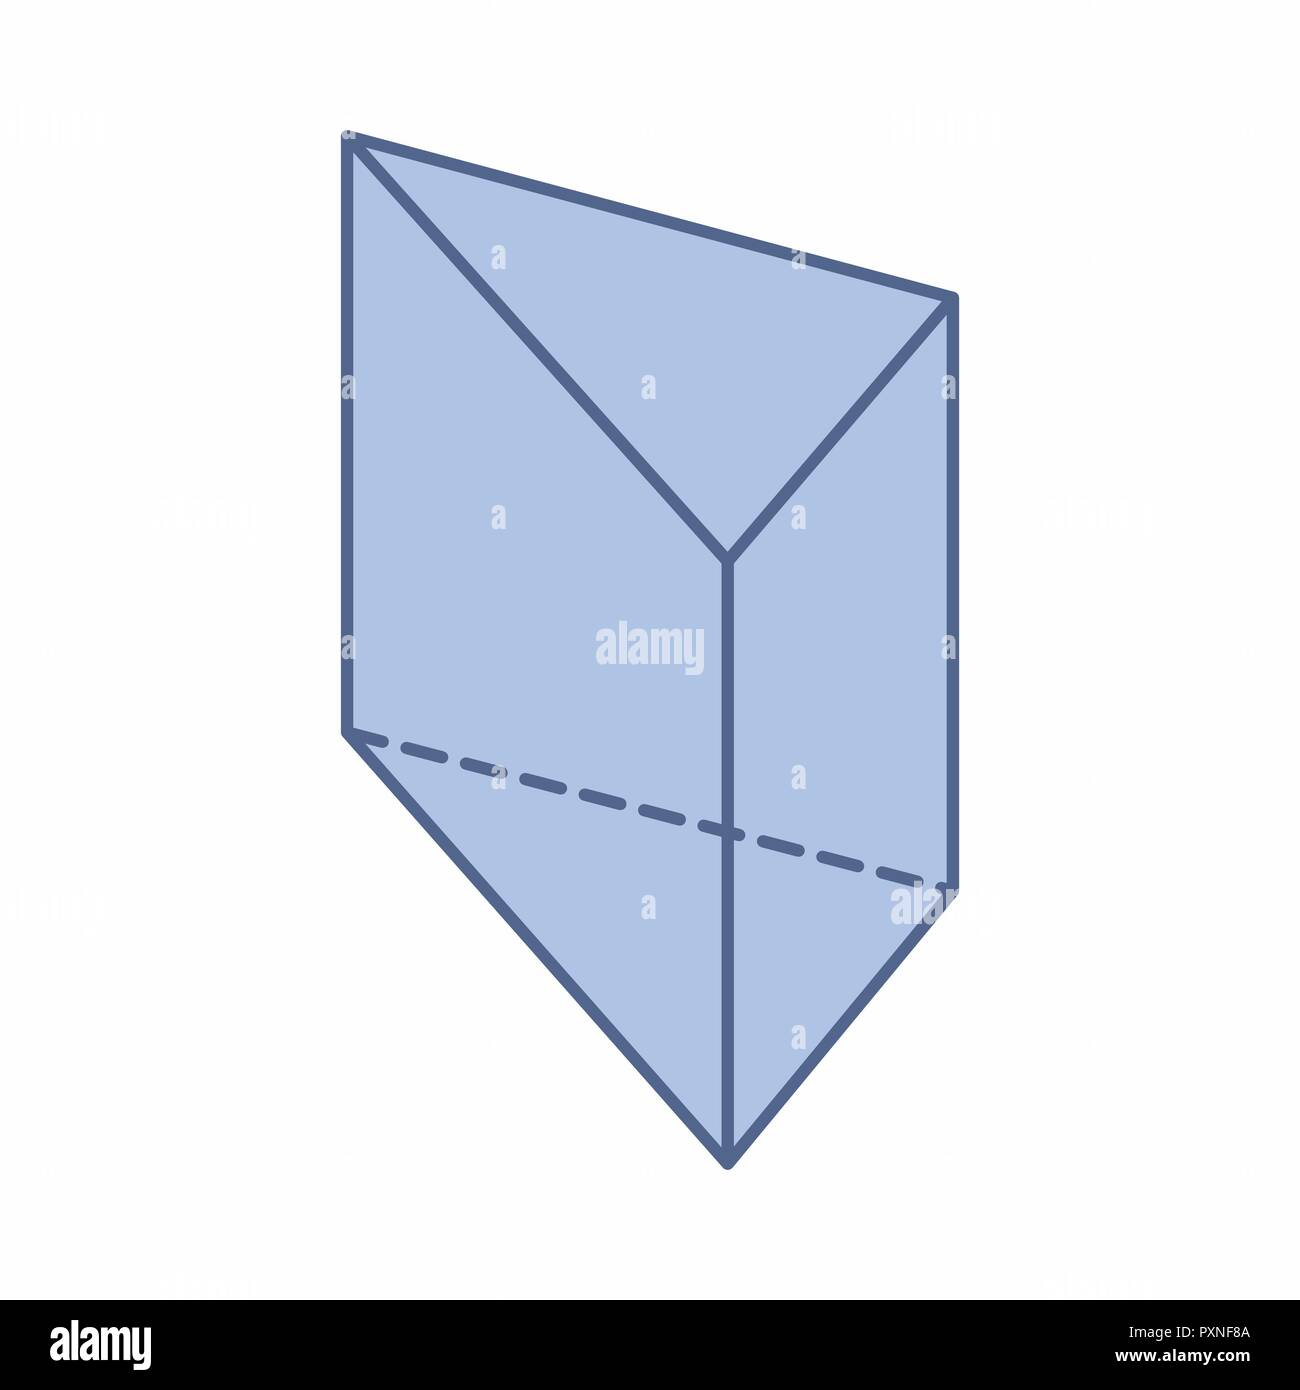 The Illustration Of An Isolated Triangular Prism On White Background